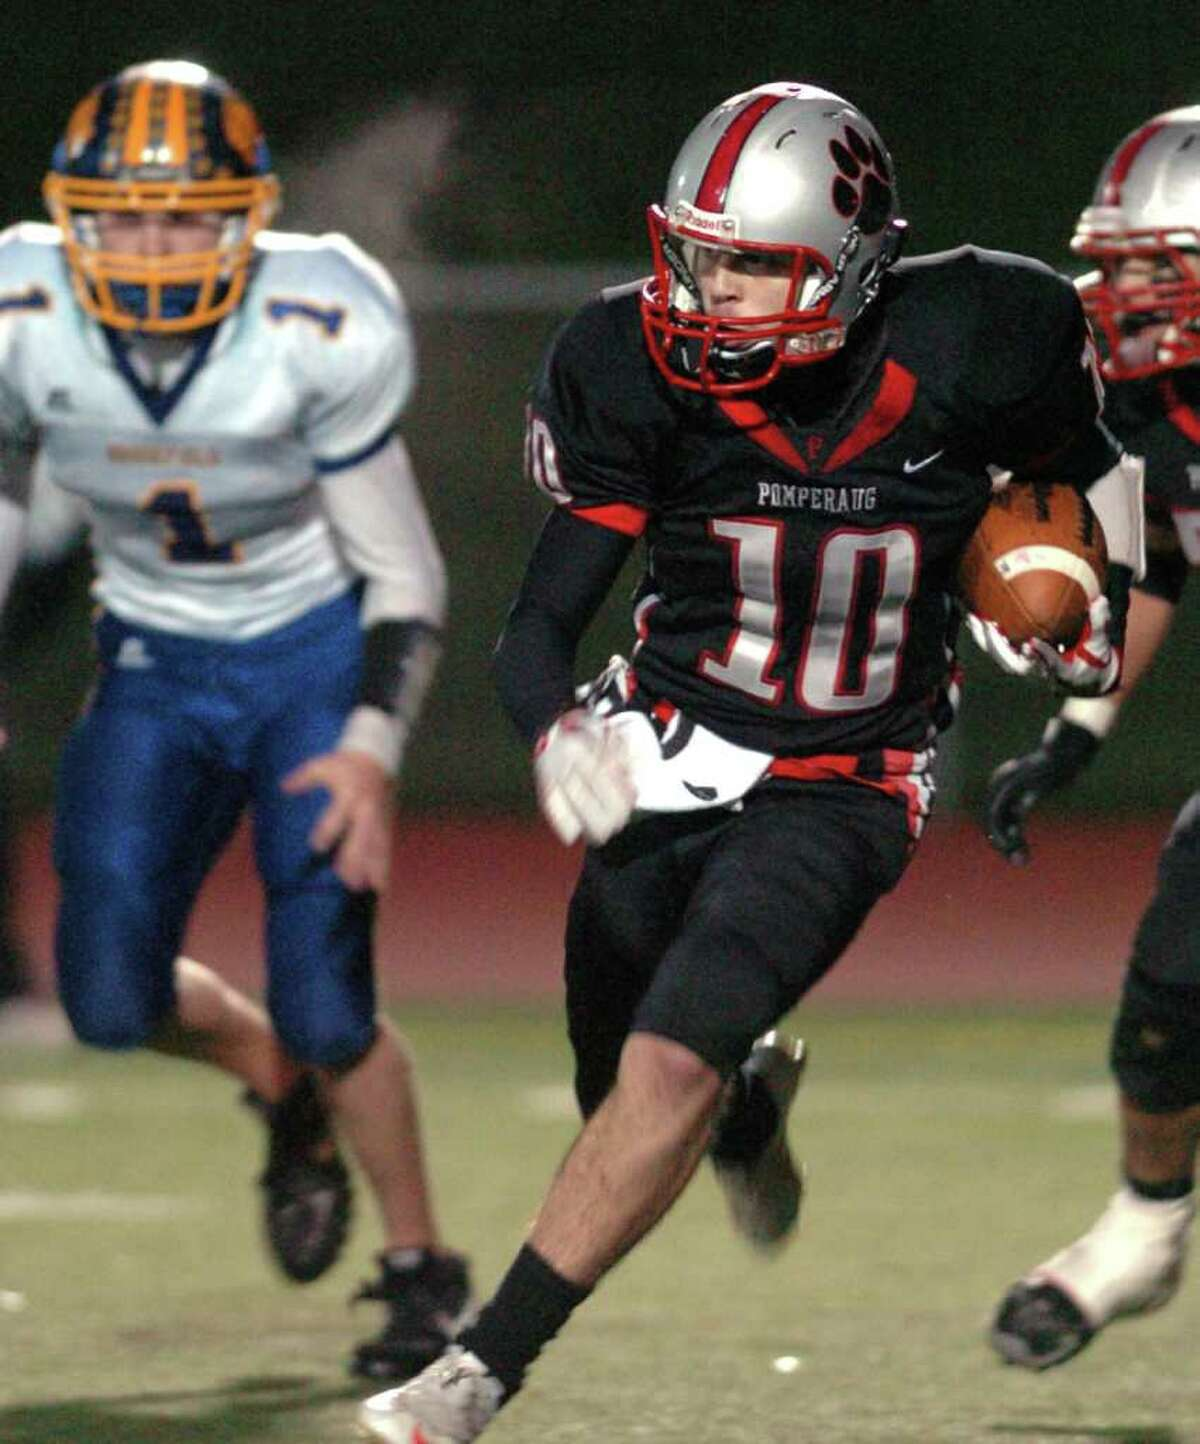 Pomperaug's 10, Connor O'dea heads upfield during the football game against Brookfield at Southbury High School Nov. 5, 2010.